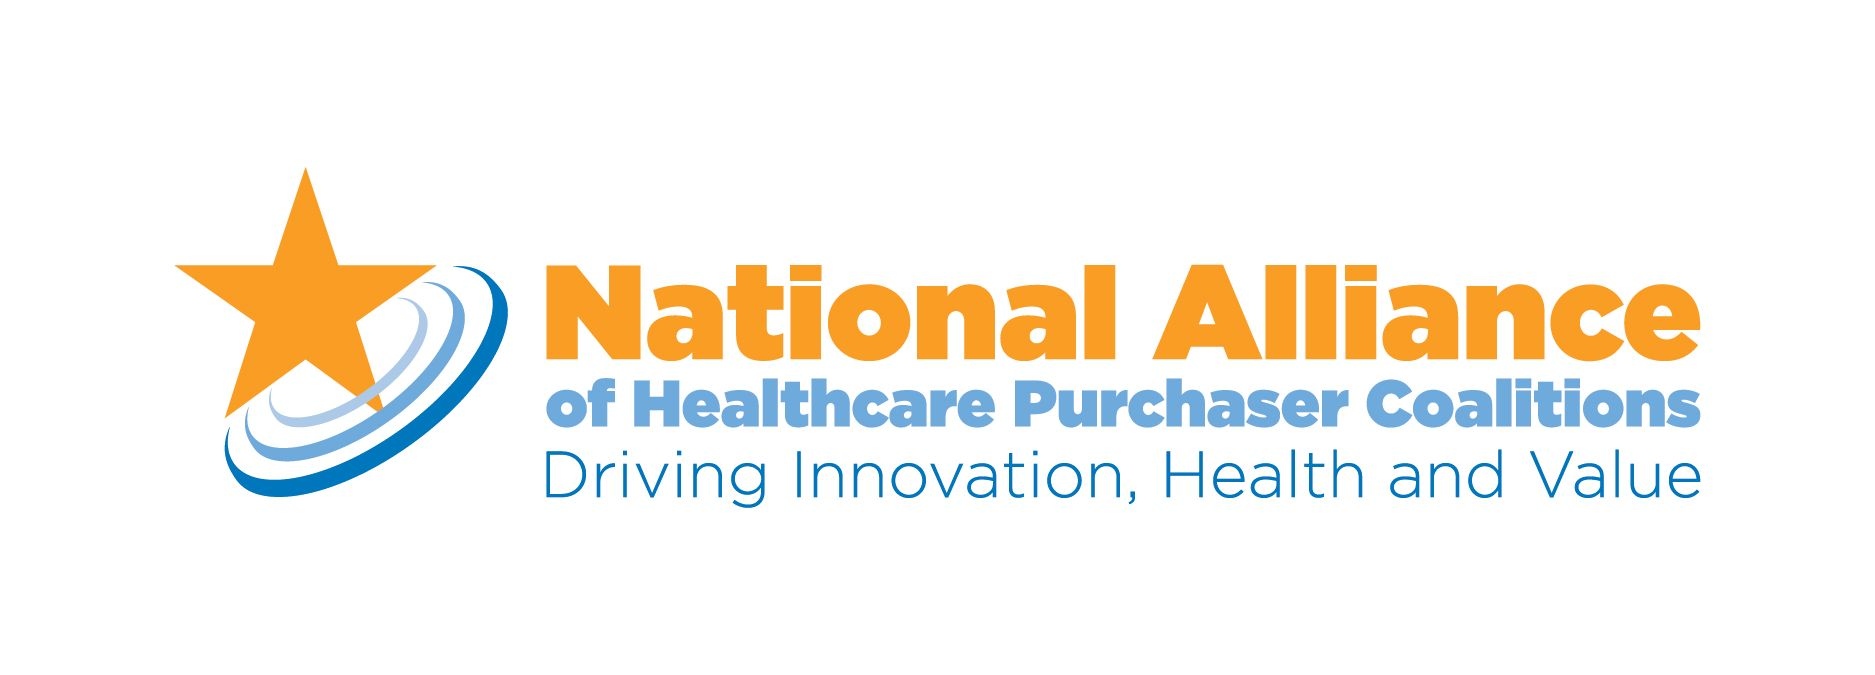 National Alliance of Healthcare Purchaser Coalitions logo